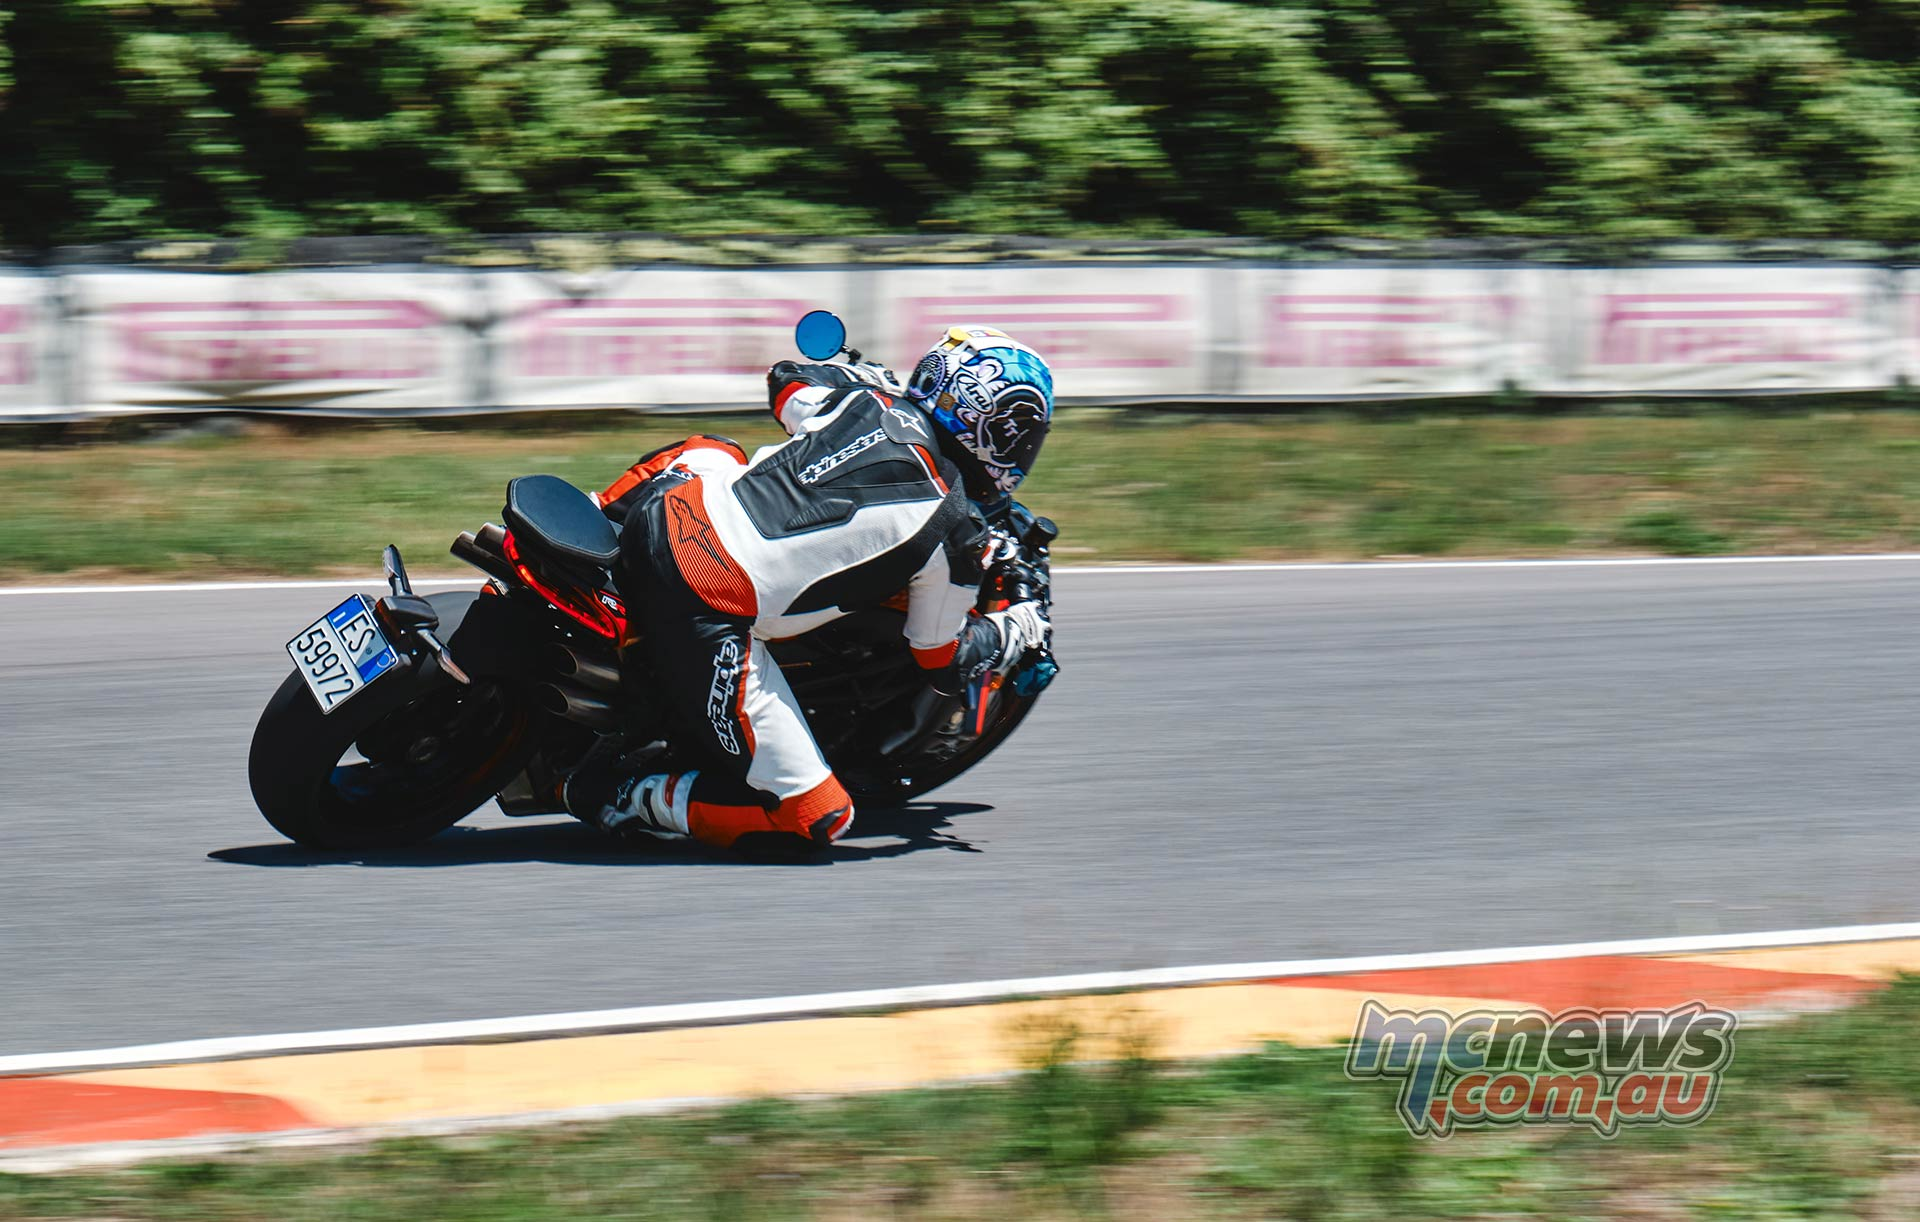 Adam tests the MV Agusta Brutale 1000 RR on the track